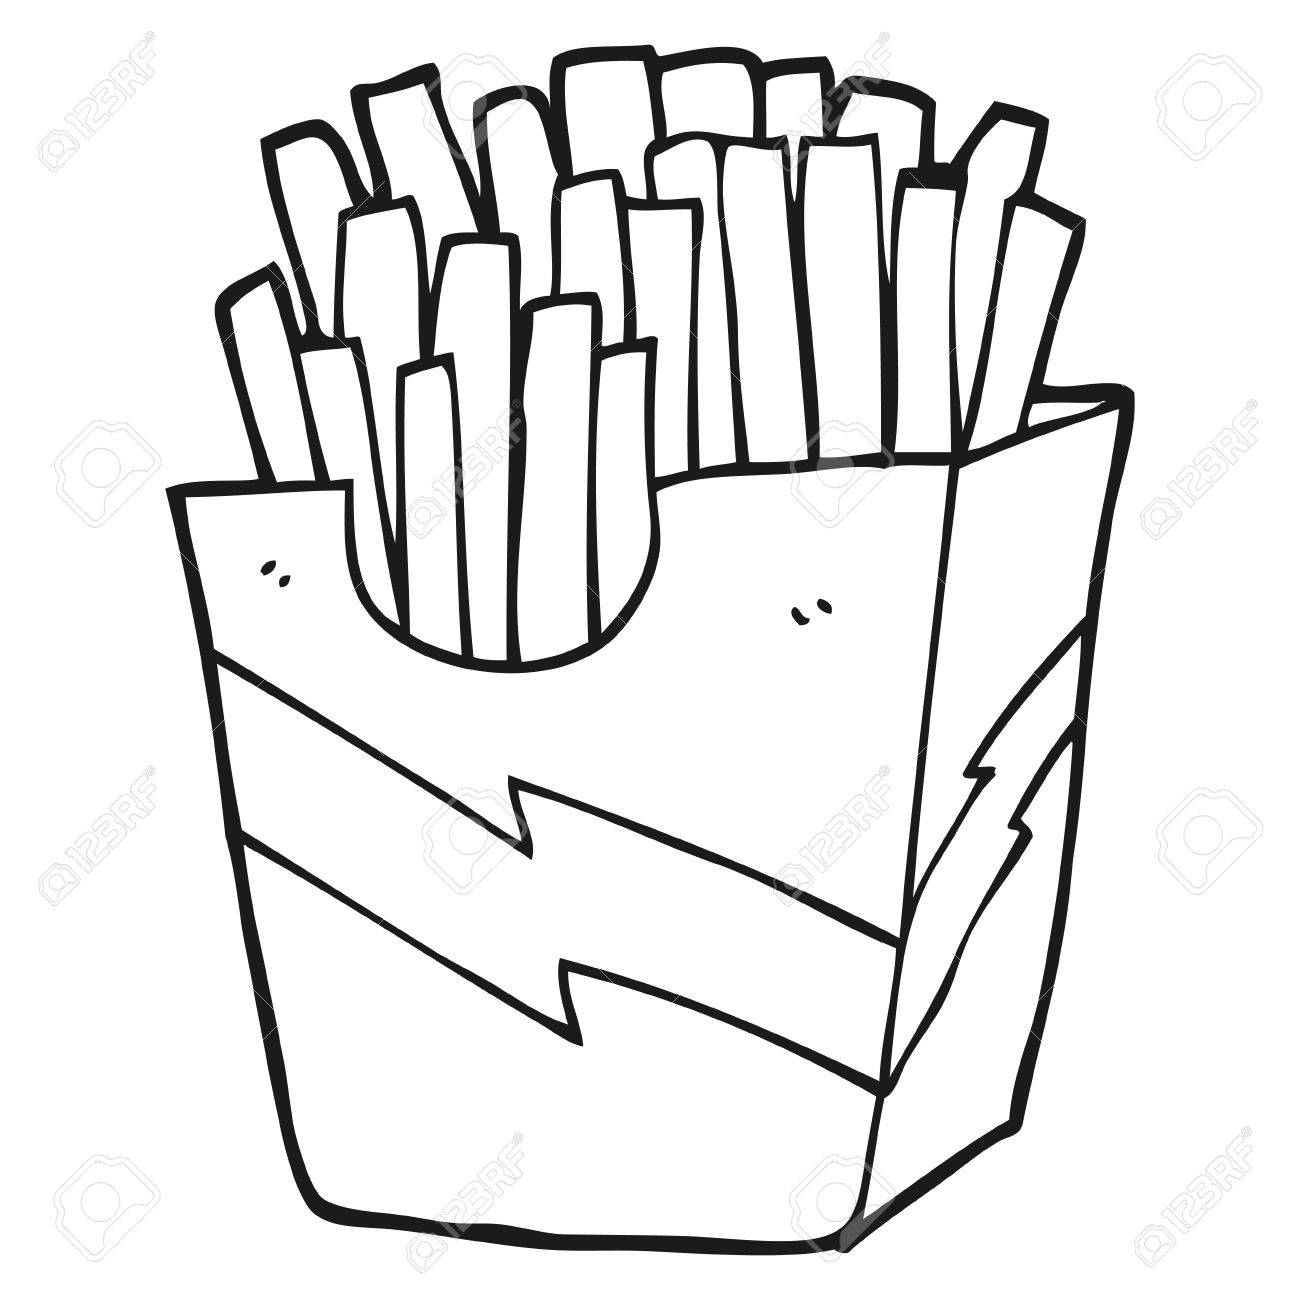 freehand drawn black and white cartoon french fries royalty free rh 123rf com Marriage Clip Art Black and White Vintage Clip Art Black and White